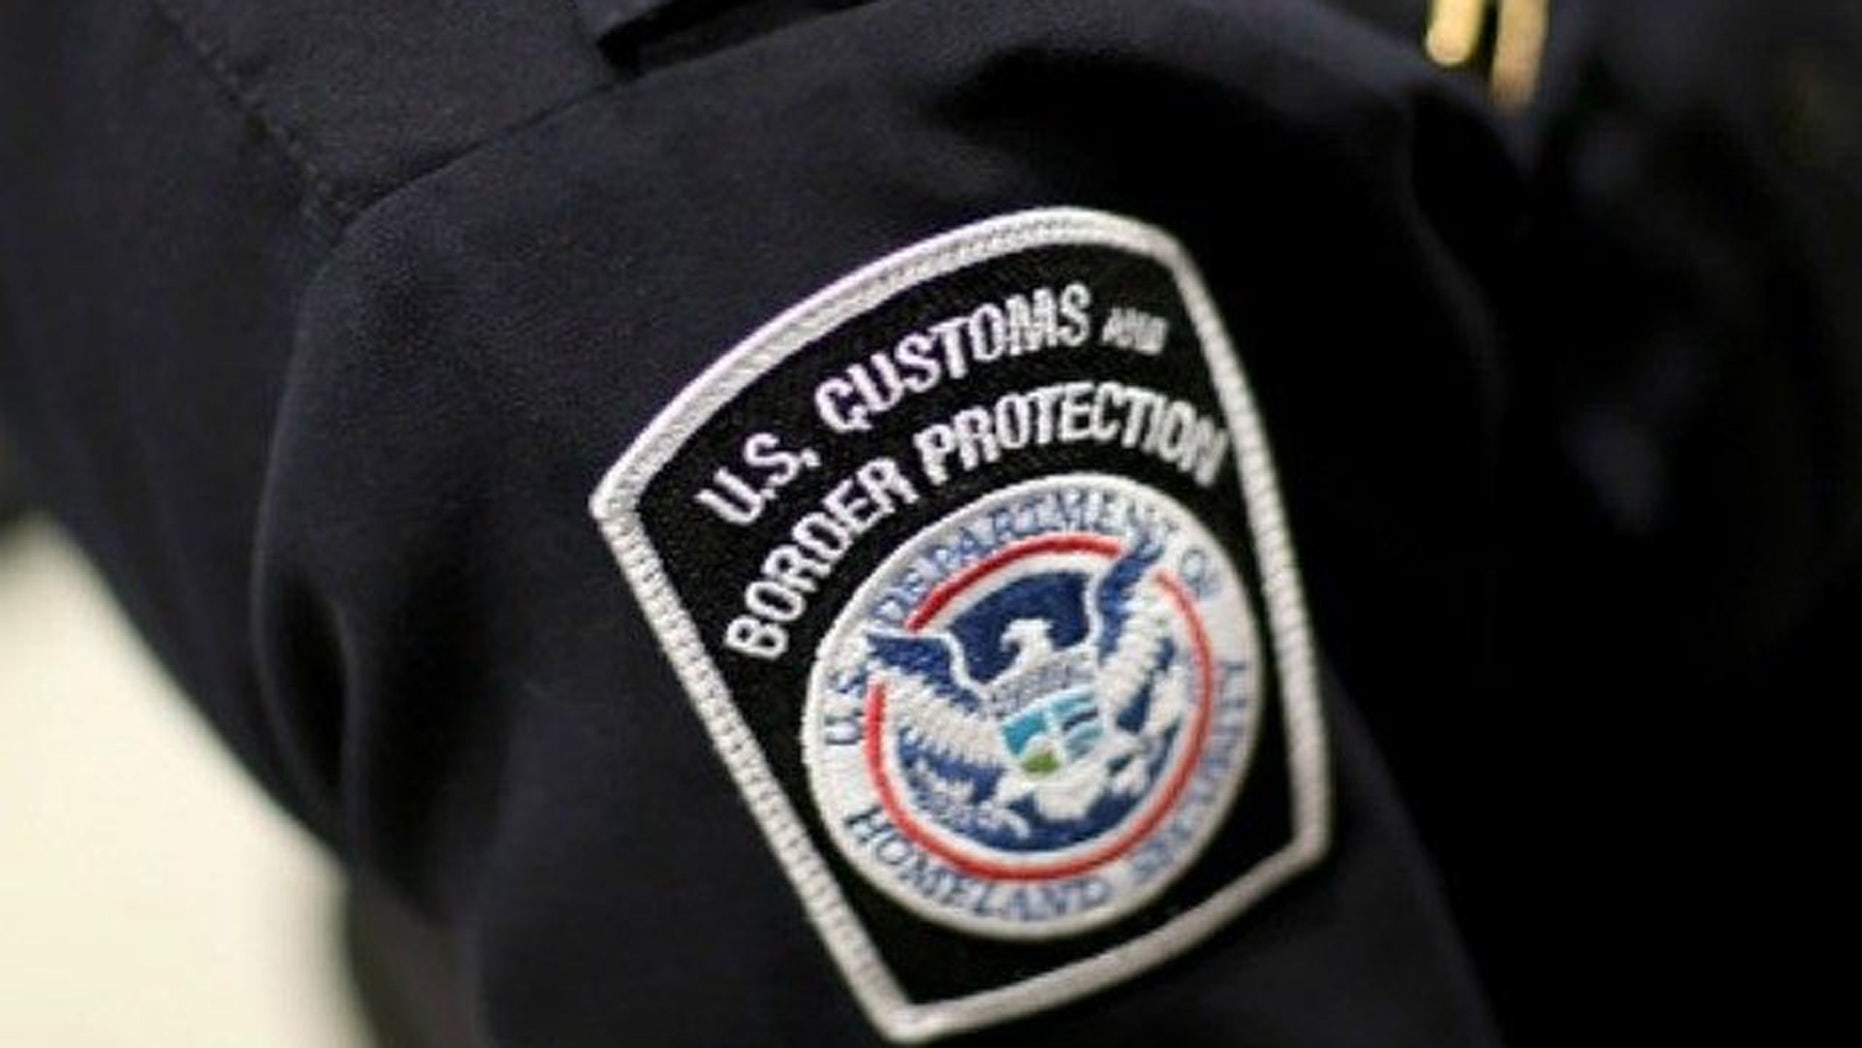 A U.S. Customs and Border Protection officer's patch.